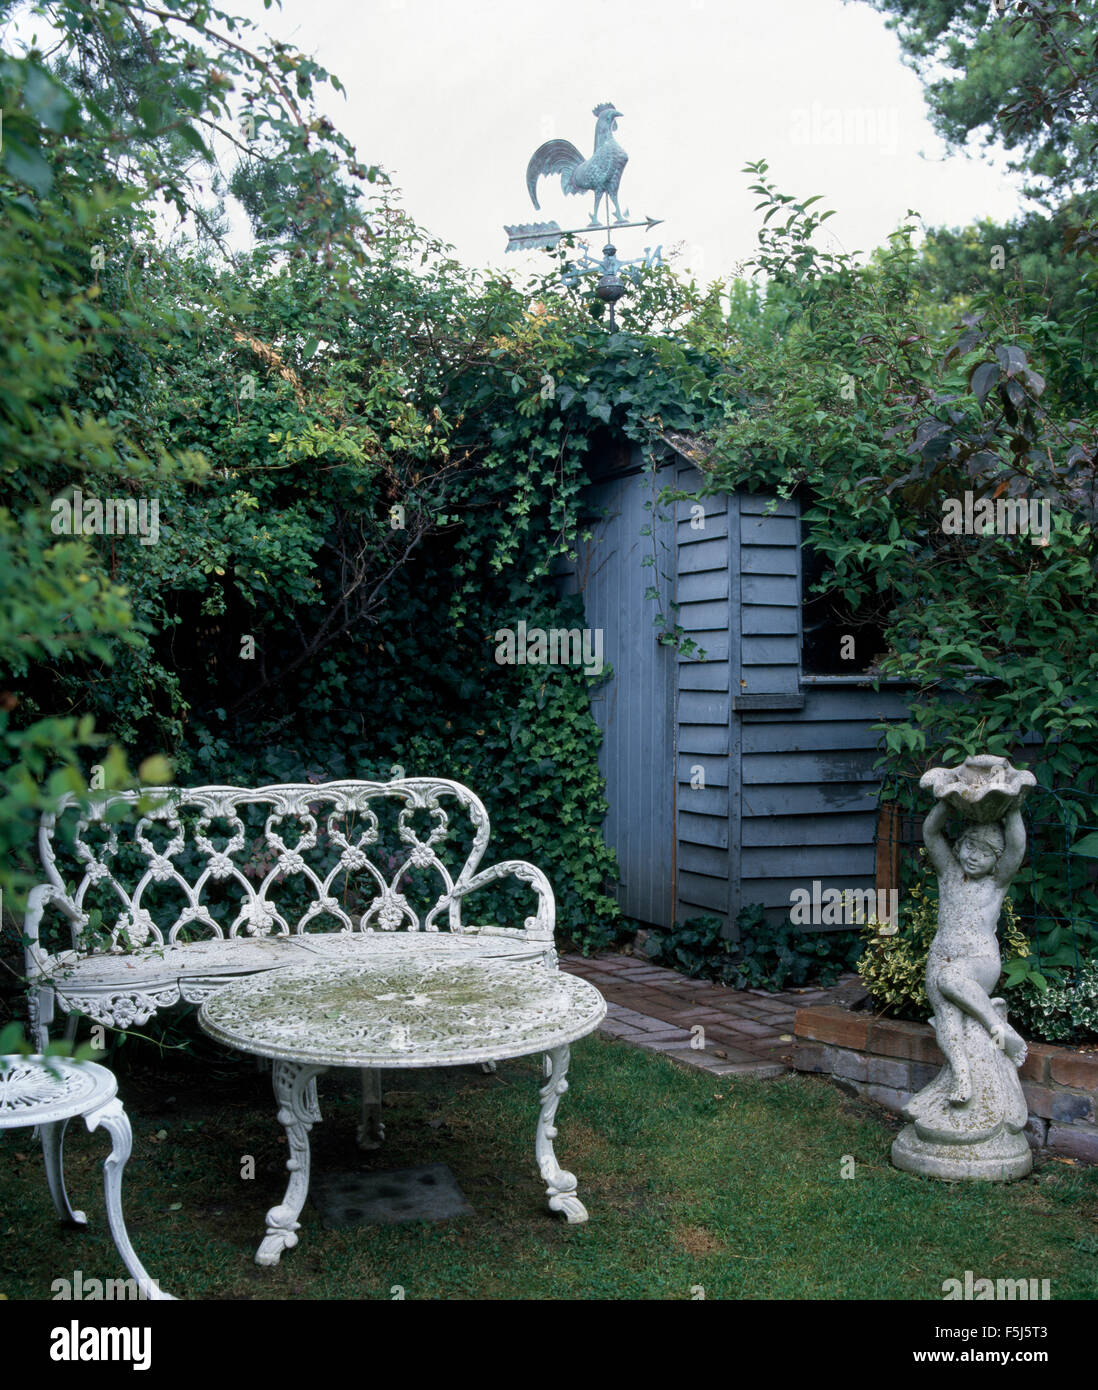 Astounding White Wrought Iron Bench And Table In Garden With A Stone Gamerscity Chair Design For Home Gamerscityorg